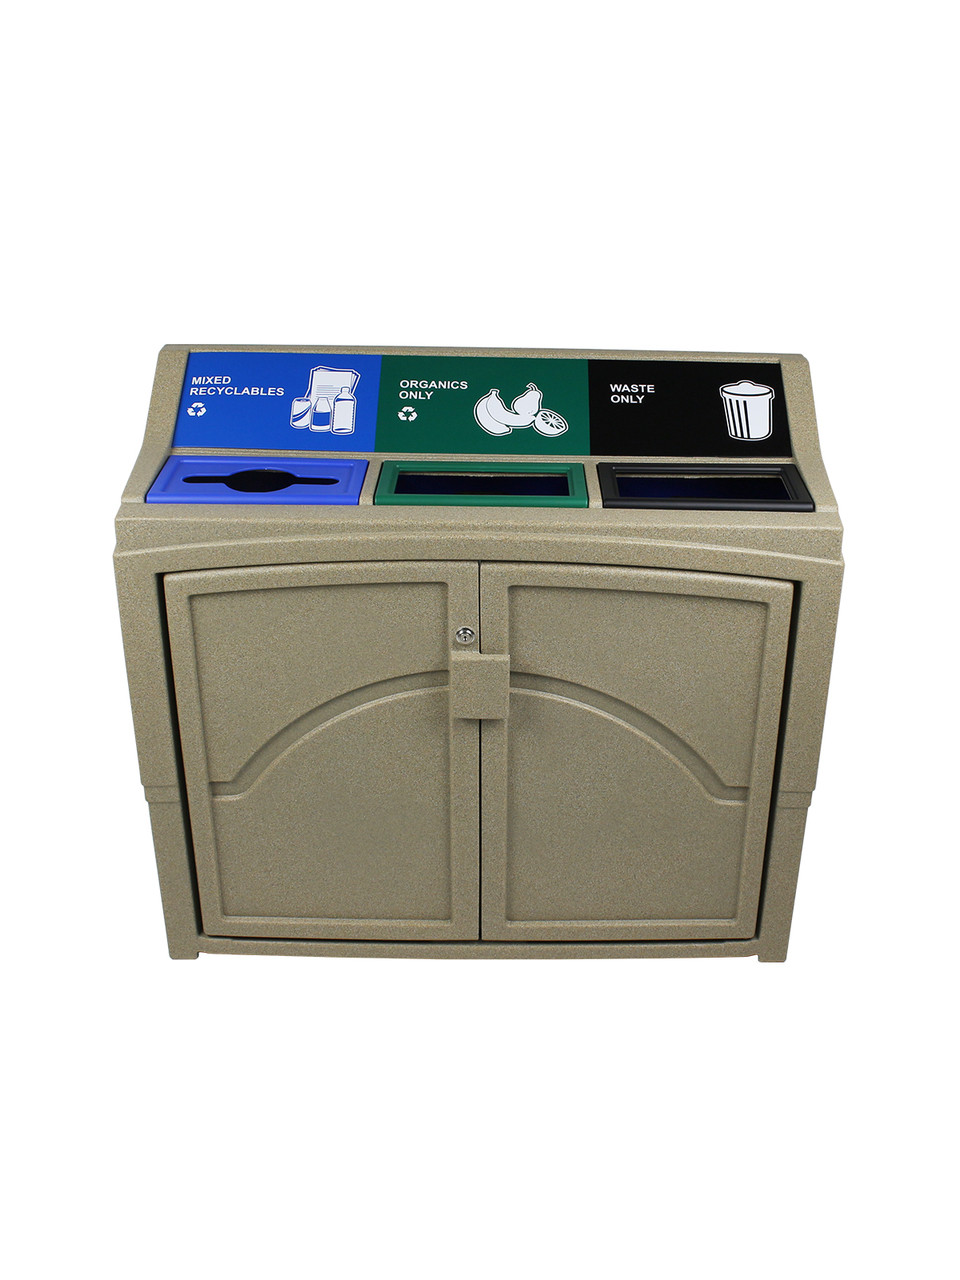 66 Gallon Indoor Pavilion Recycling Bin Sandstone 101451 (Mixed-Full-Full)